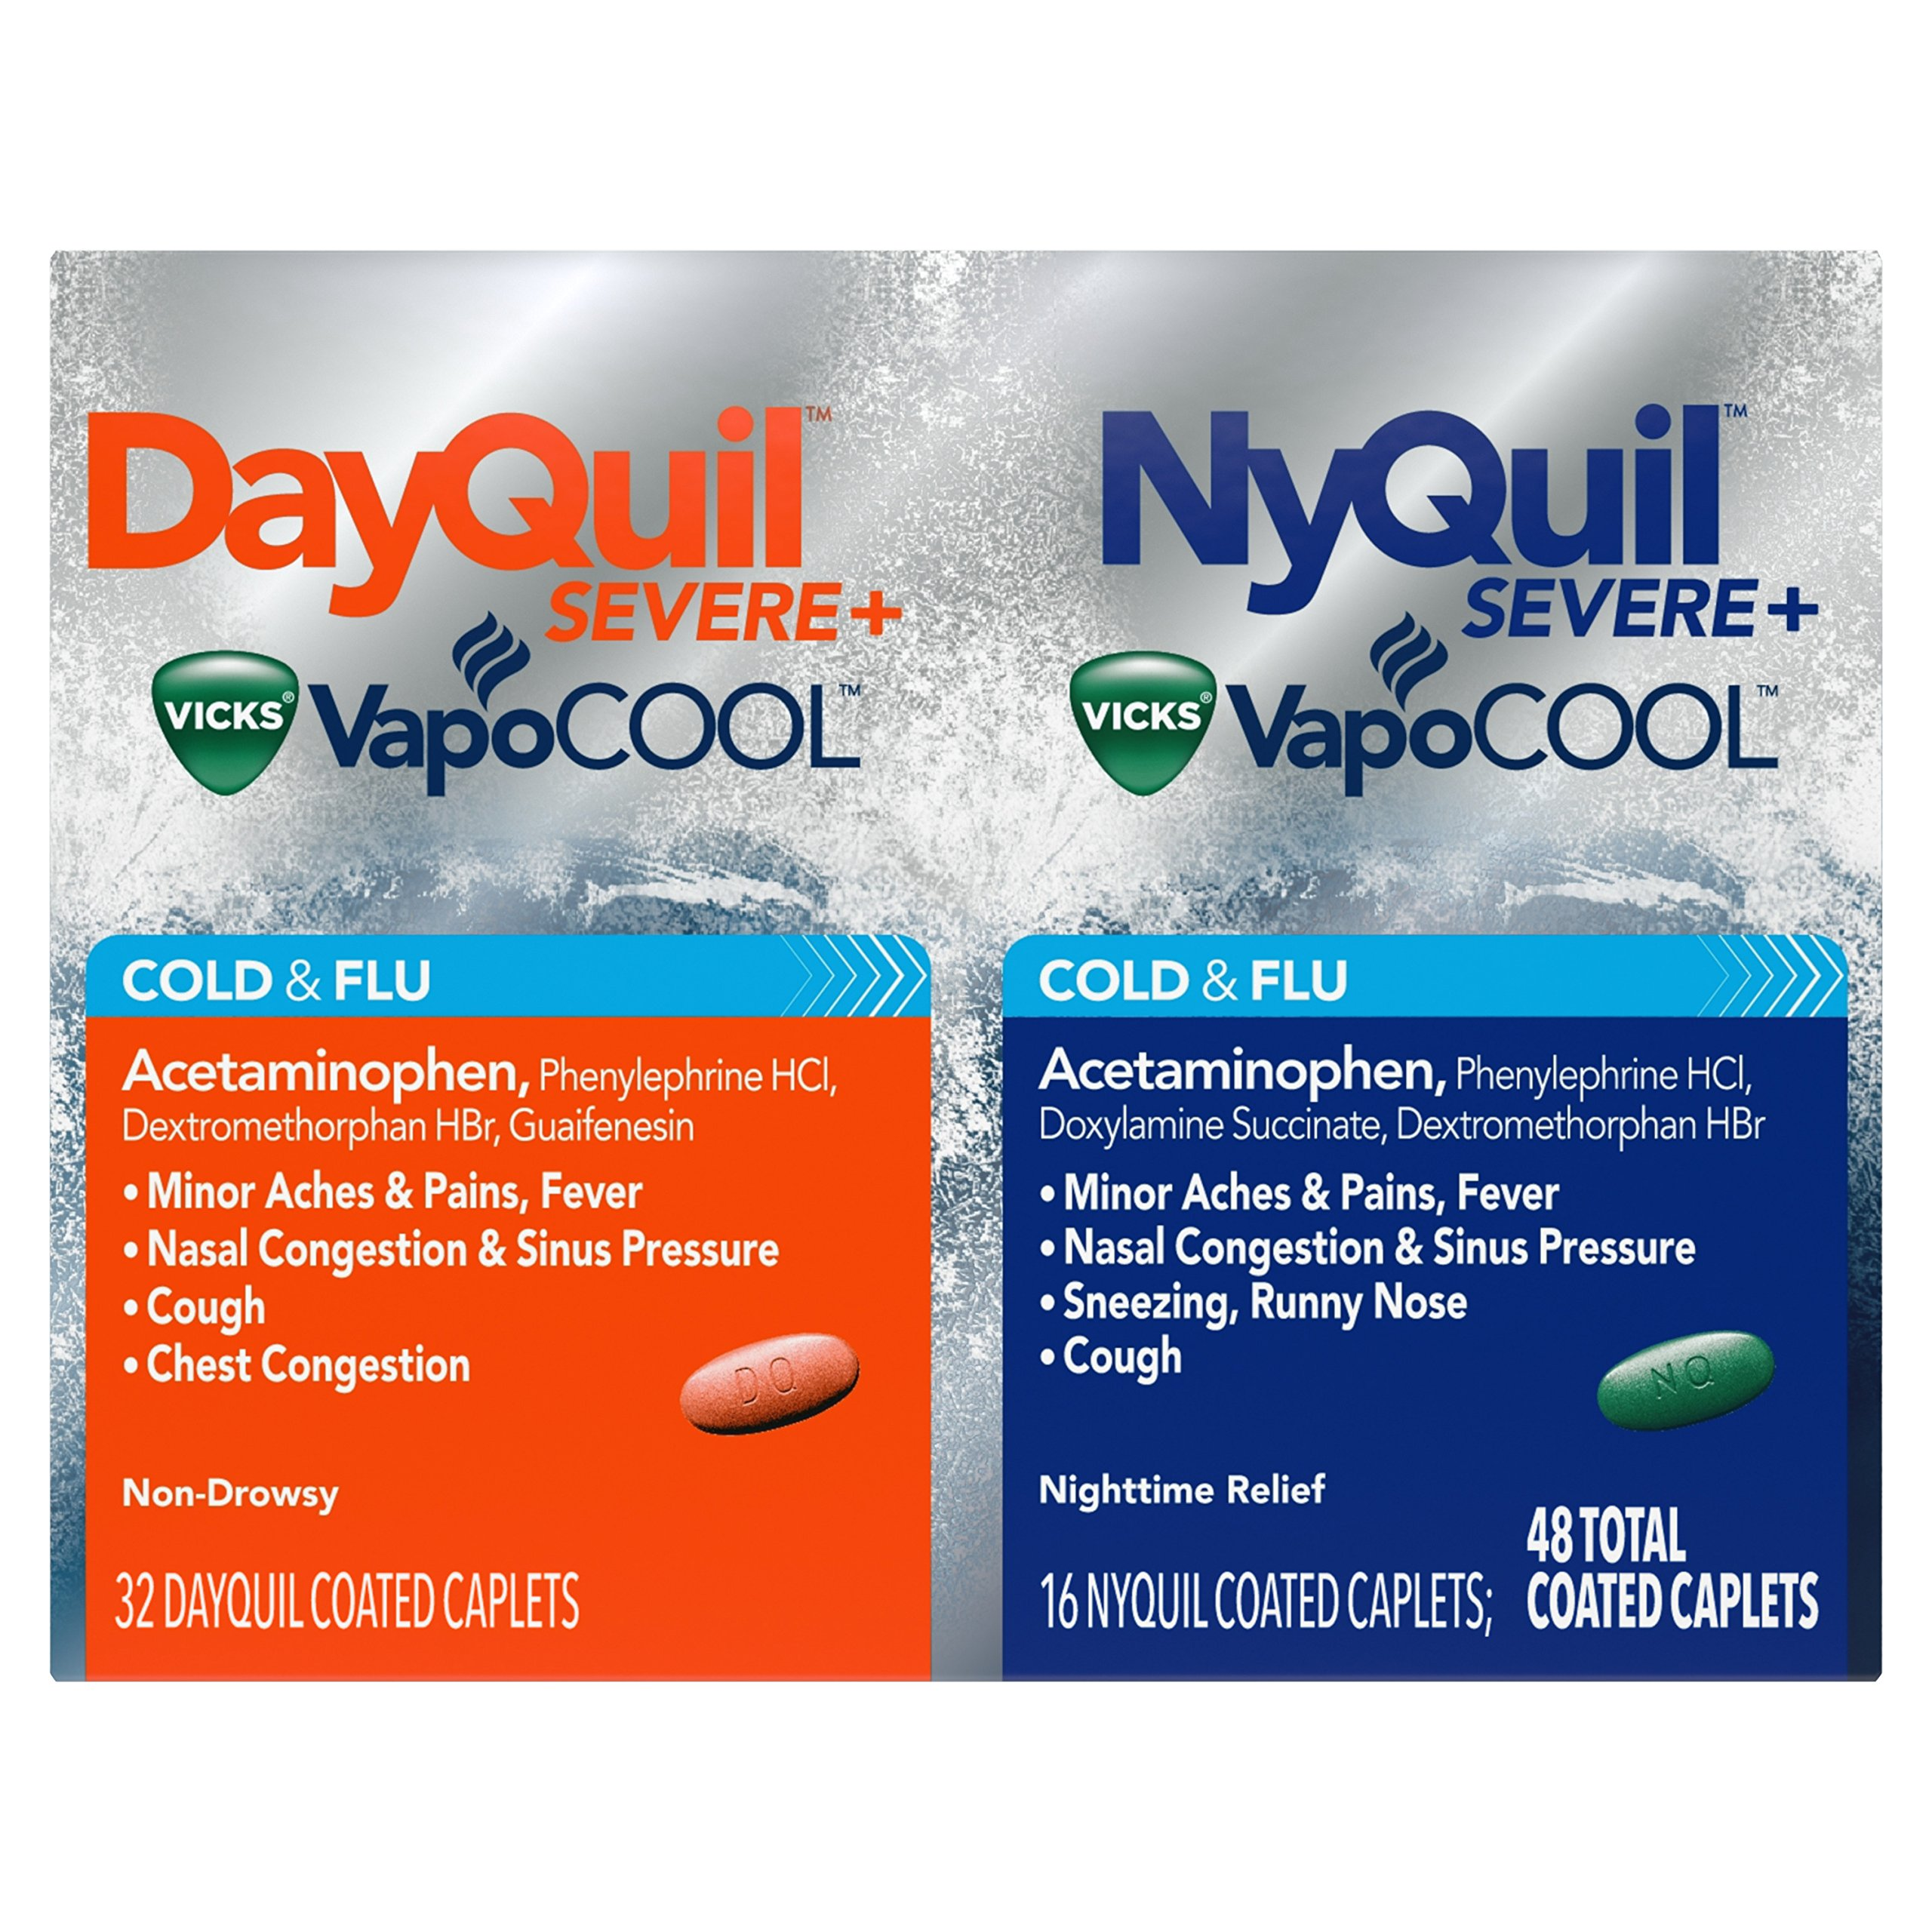 Vicks NyQuil and DayQuil SEVERE Cough Cold and Flu Relief, 48 Caplets (32 DayQuil + 16 NyQuil) (Packaging May Vary) by Vicks